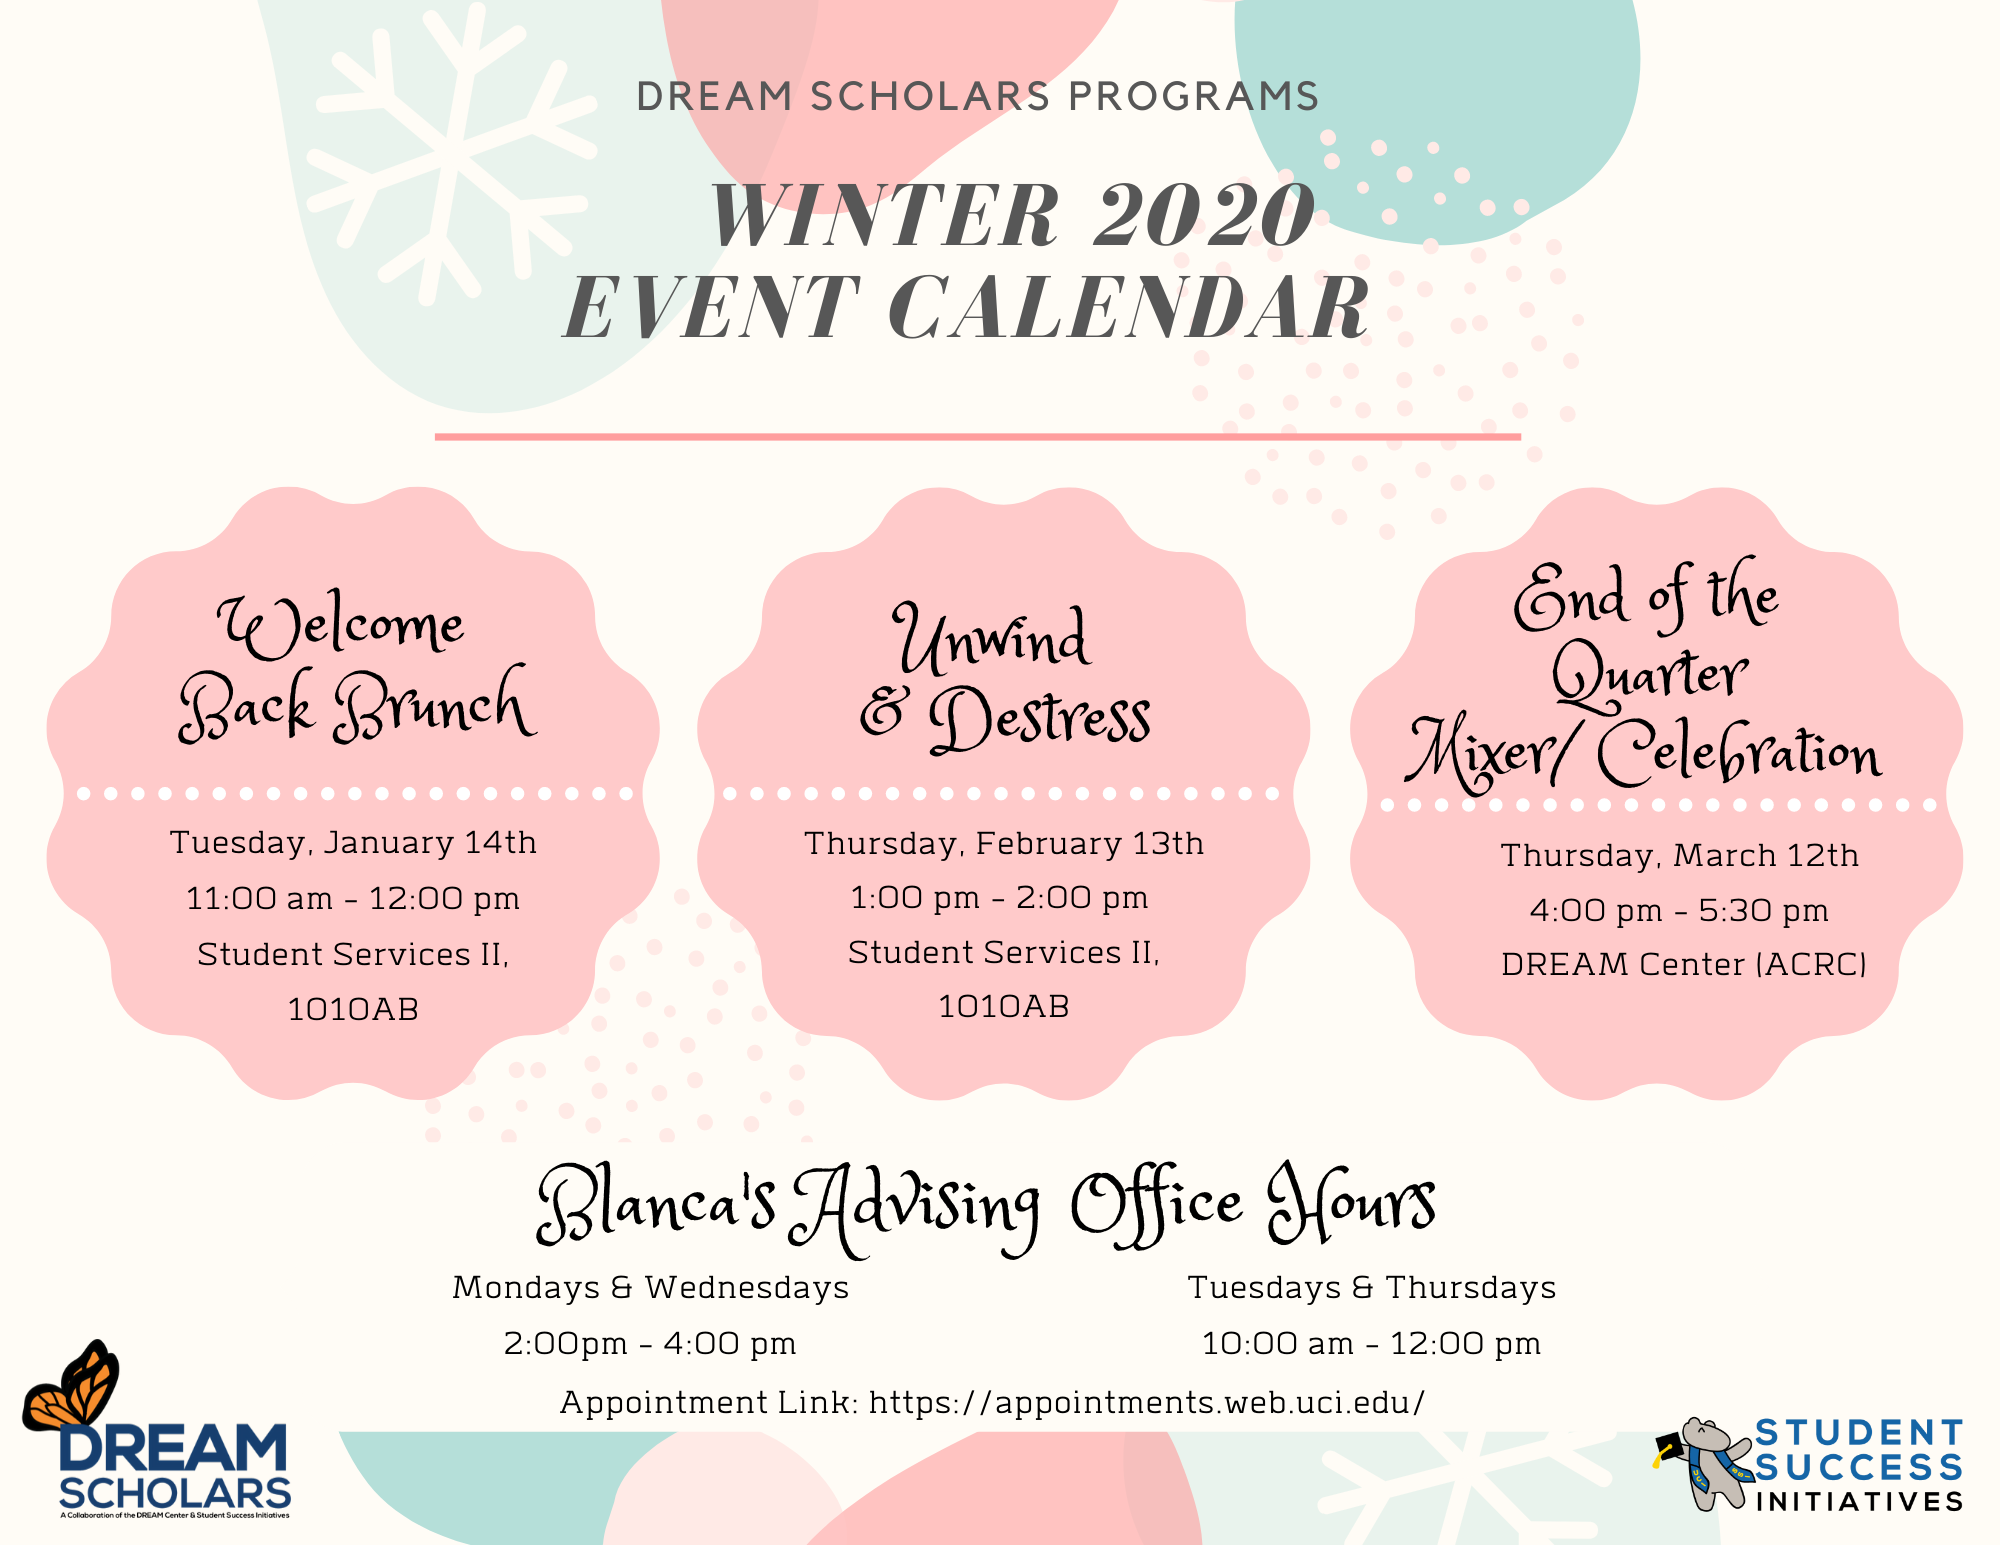 Winter 2020 Events